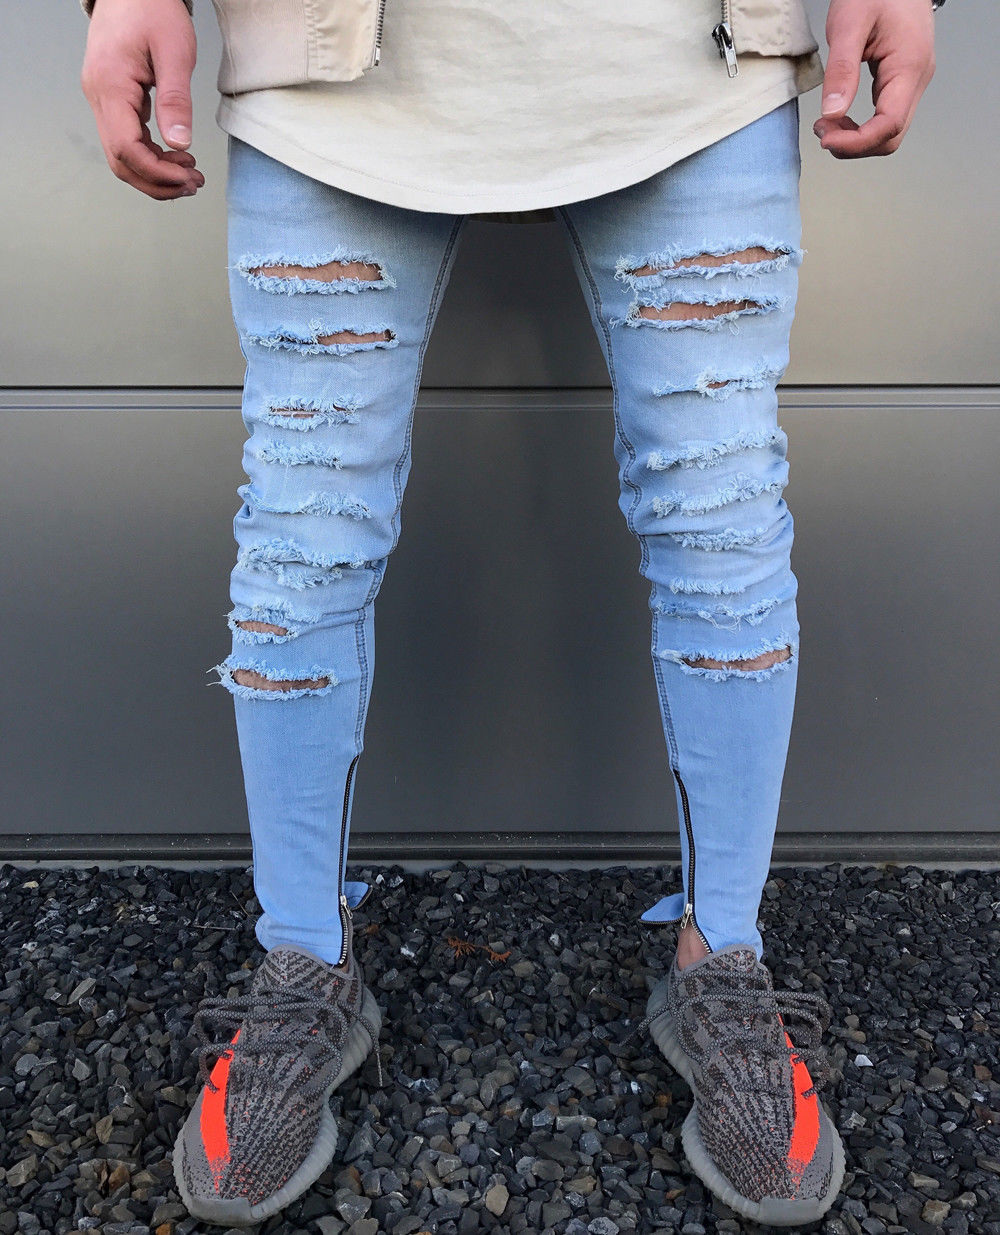 Fashion Men Ripped Skinny Hole Jeans Destroyed Frayed Slim Fit Denim Pants Stylish Mens Fake Zipper Pencil Denim Jeans fashion europe style printed jeans men denim jeans slim black painted pencil pants long trousers tight fit casual pattern pants